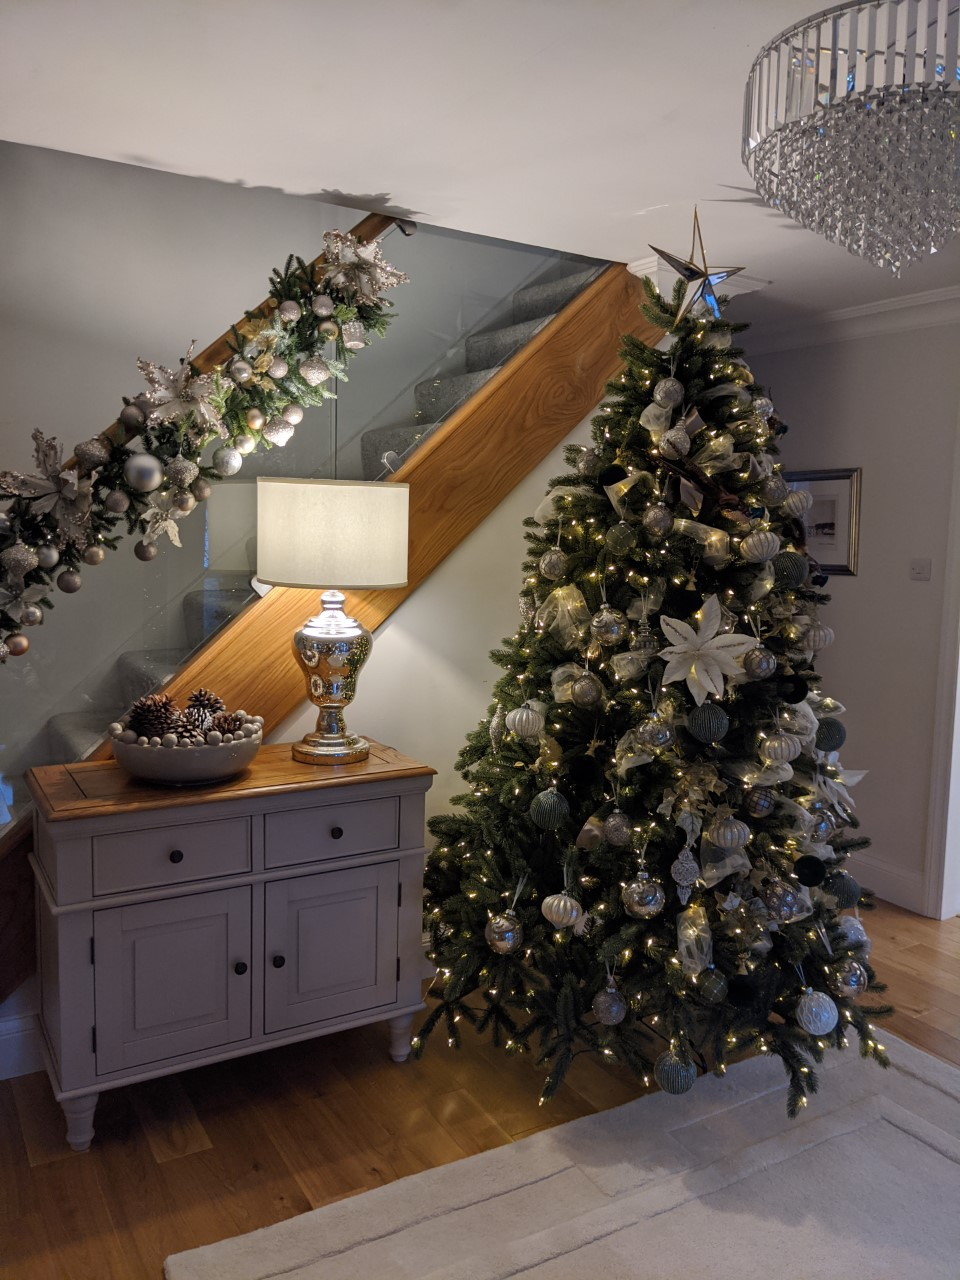 Mrs Roobottom's Christmas Home Tour